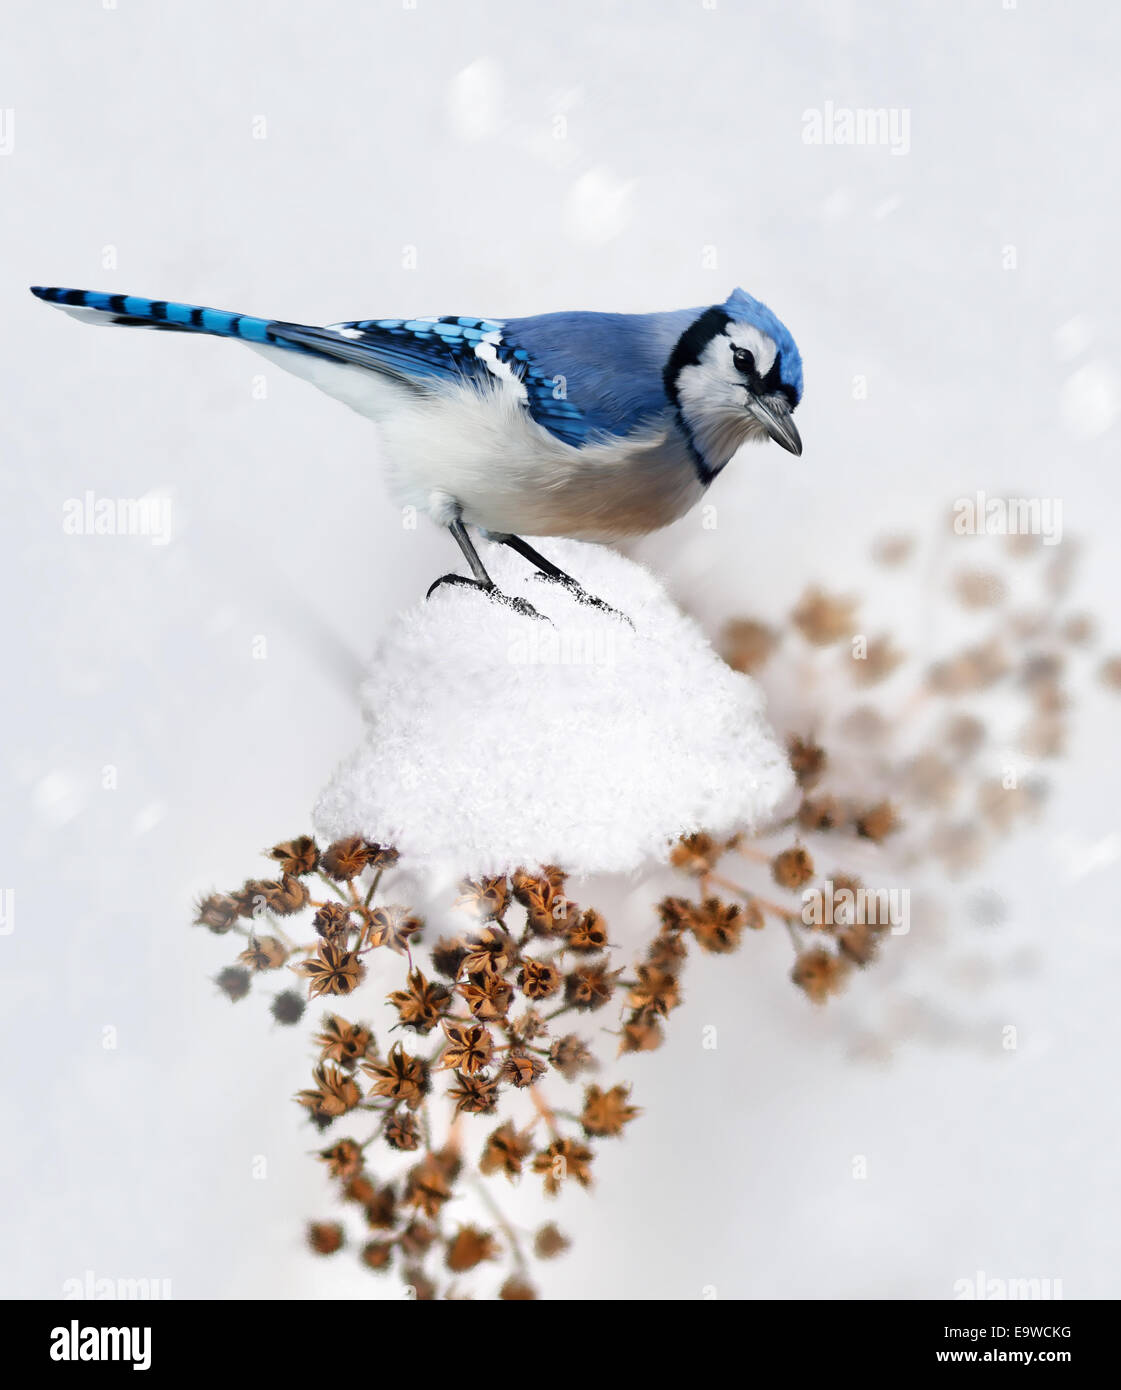 La pittura digitale di Blue Jay in inverno Immagini Stock